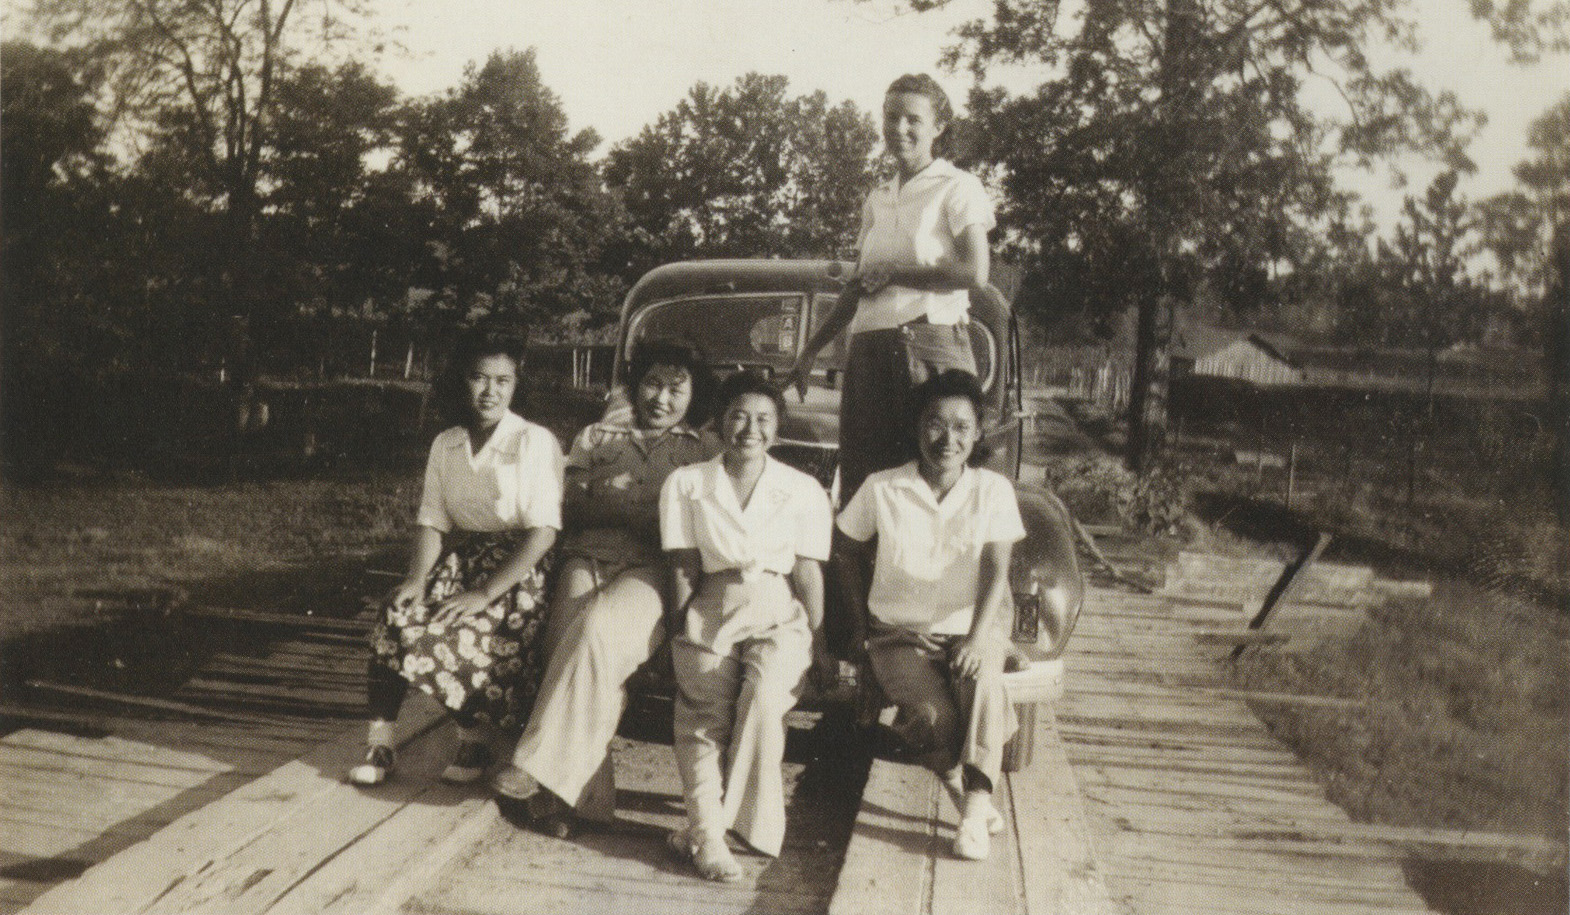 Ruth (second from left) and her teacher, Mrs. Beasley (standing), with other students at Rohwer, 1943. Photograph by Mabel Rose Jamison.